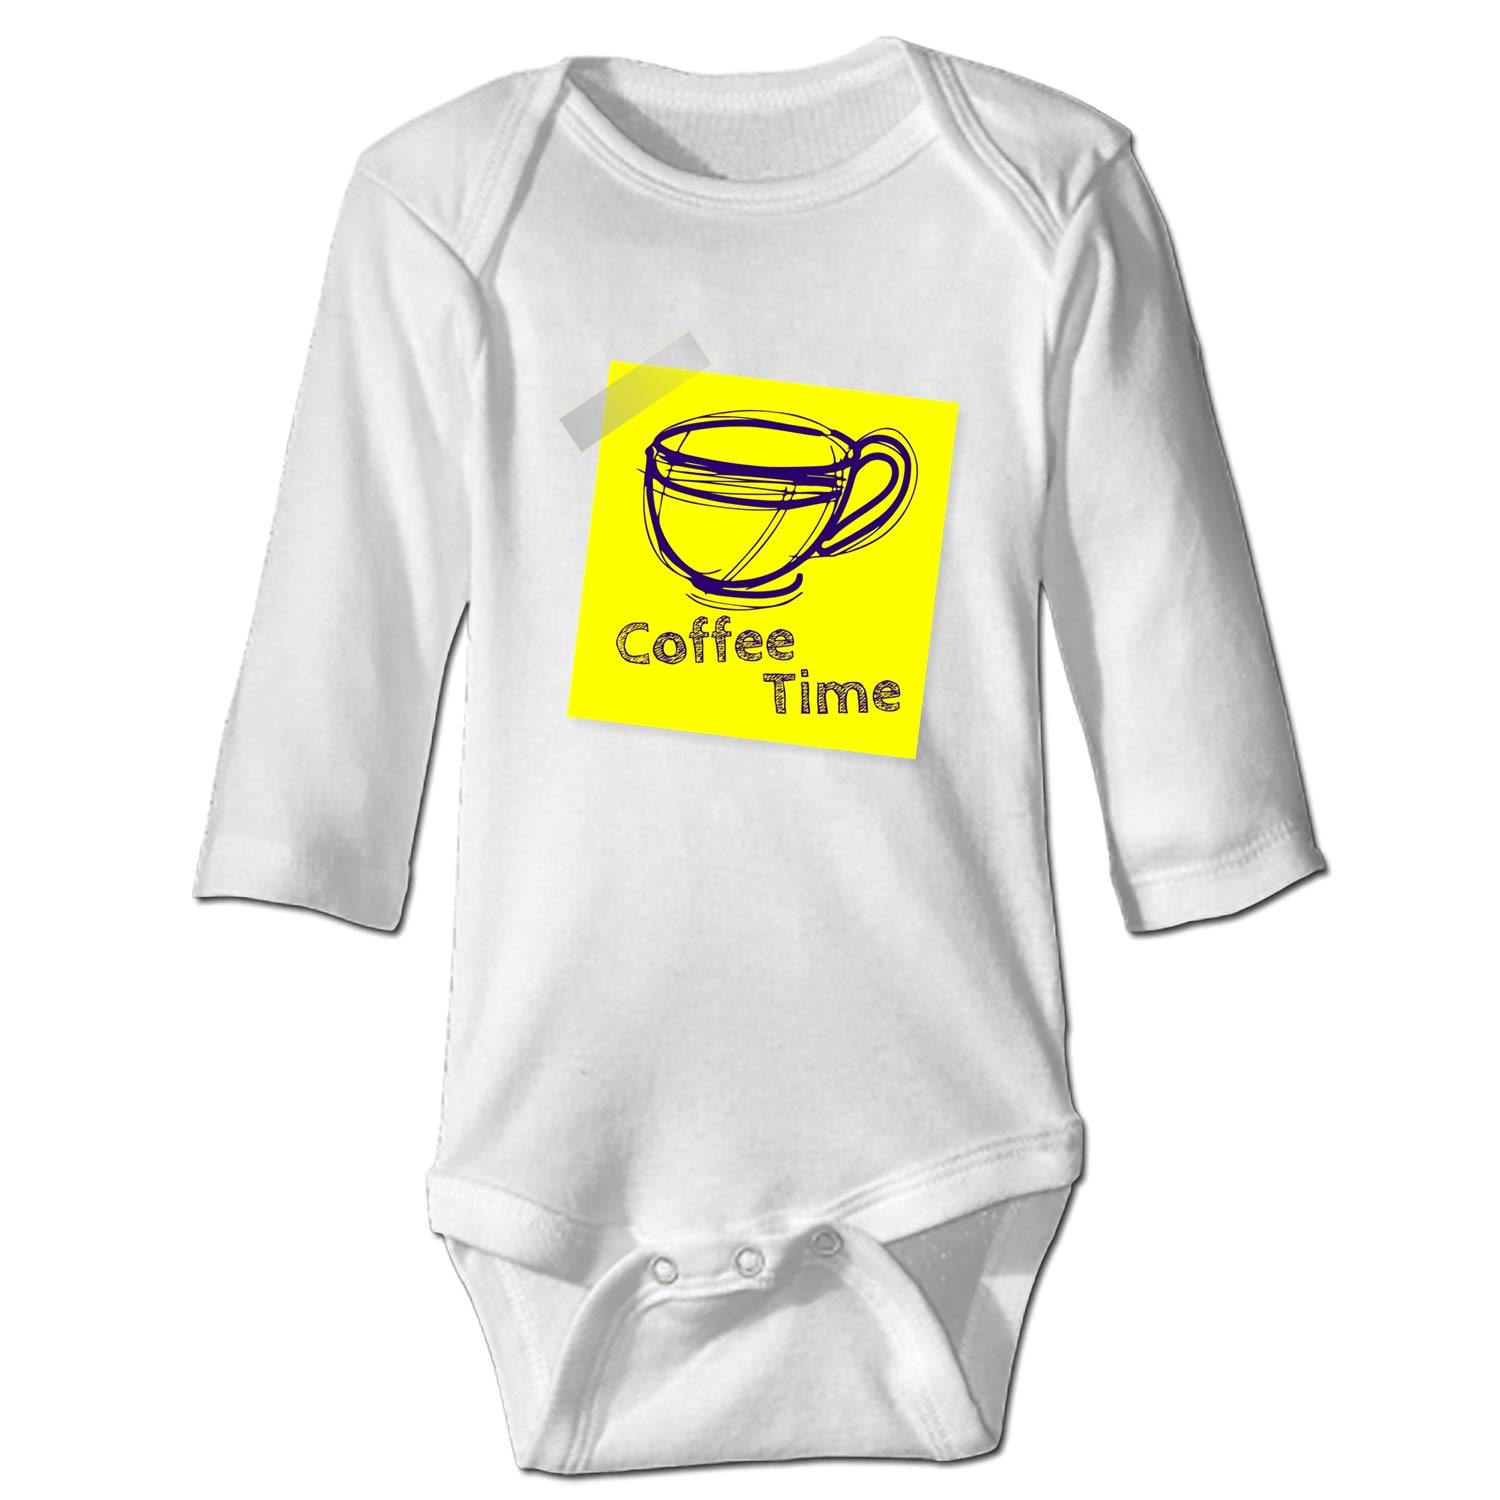 farg Baby Clothing Enjoy Coffee Time Funny Baby Bodysuit